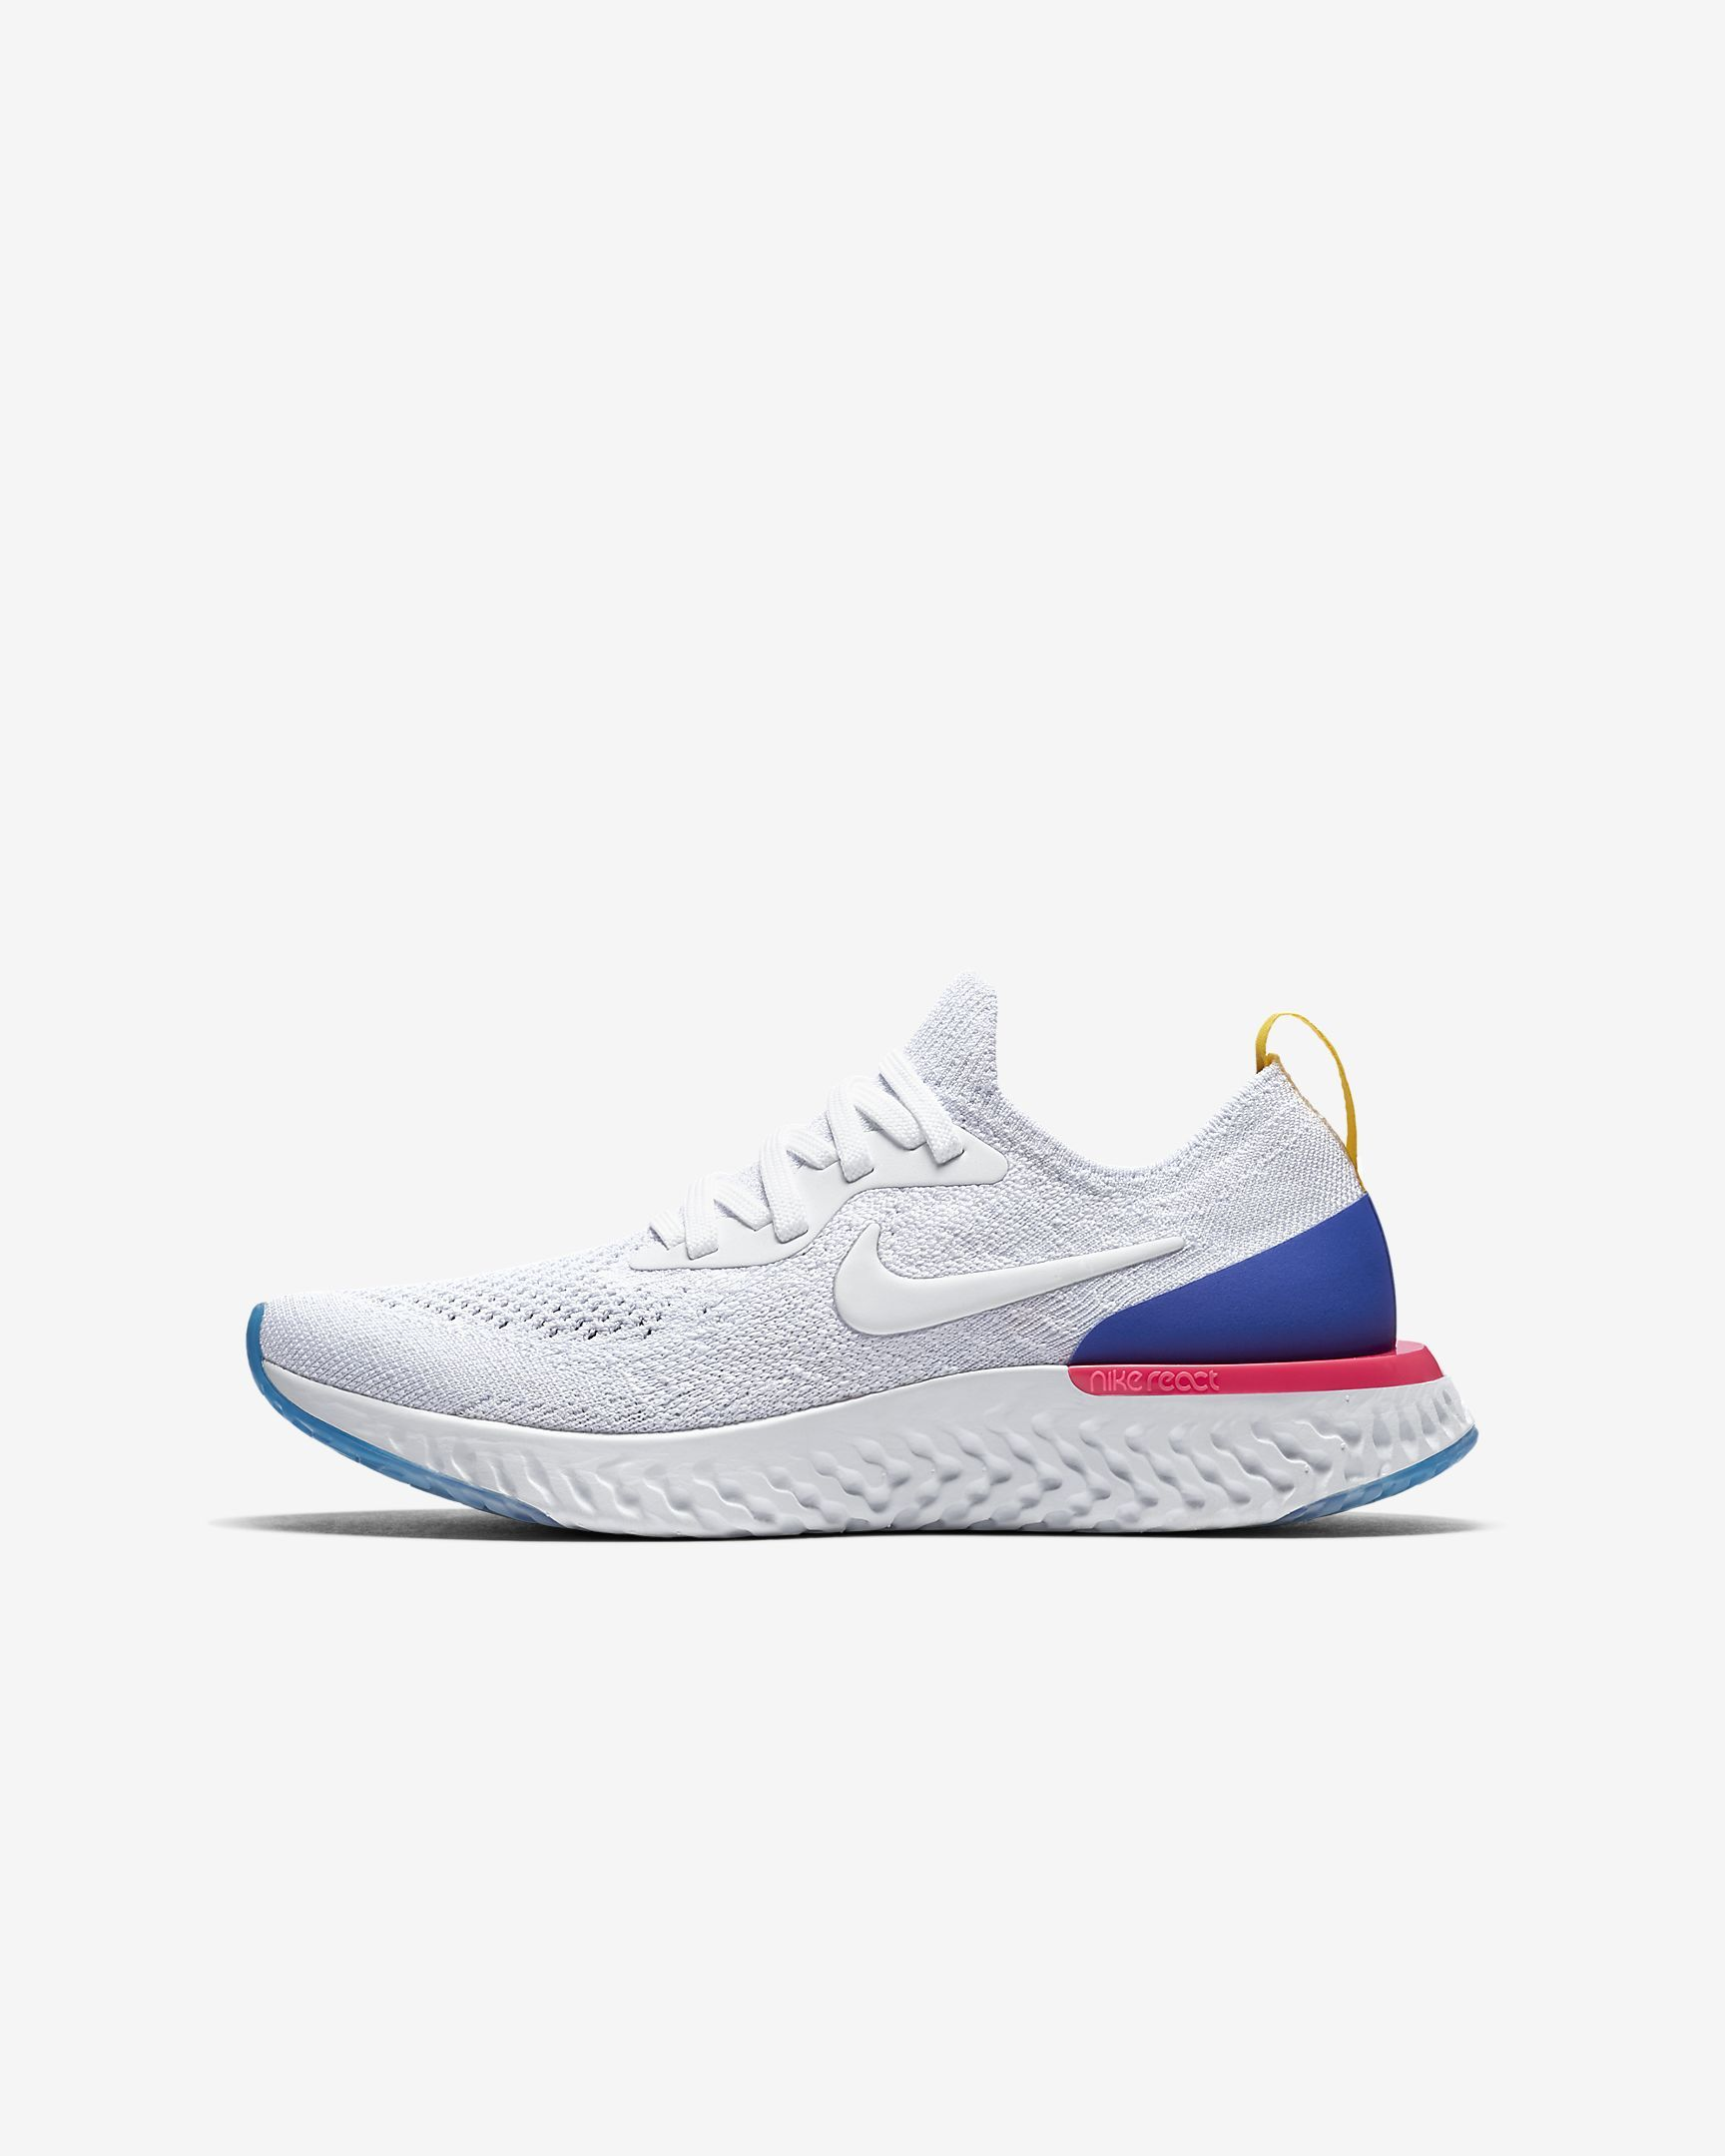 222a0b613a8 Nike Epic React Flyknit Older Kids  Running Shoe